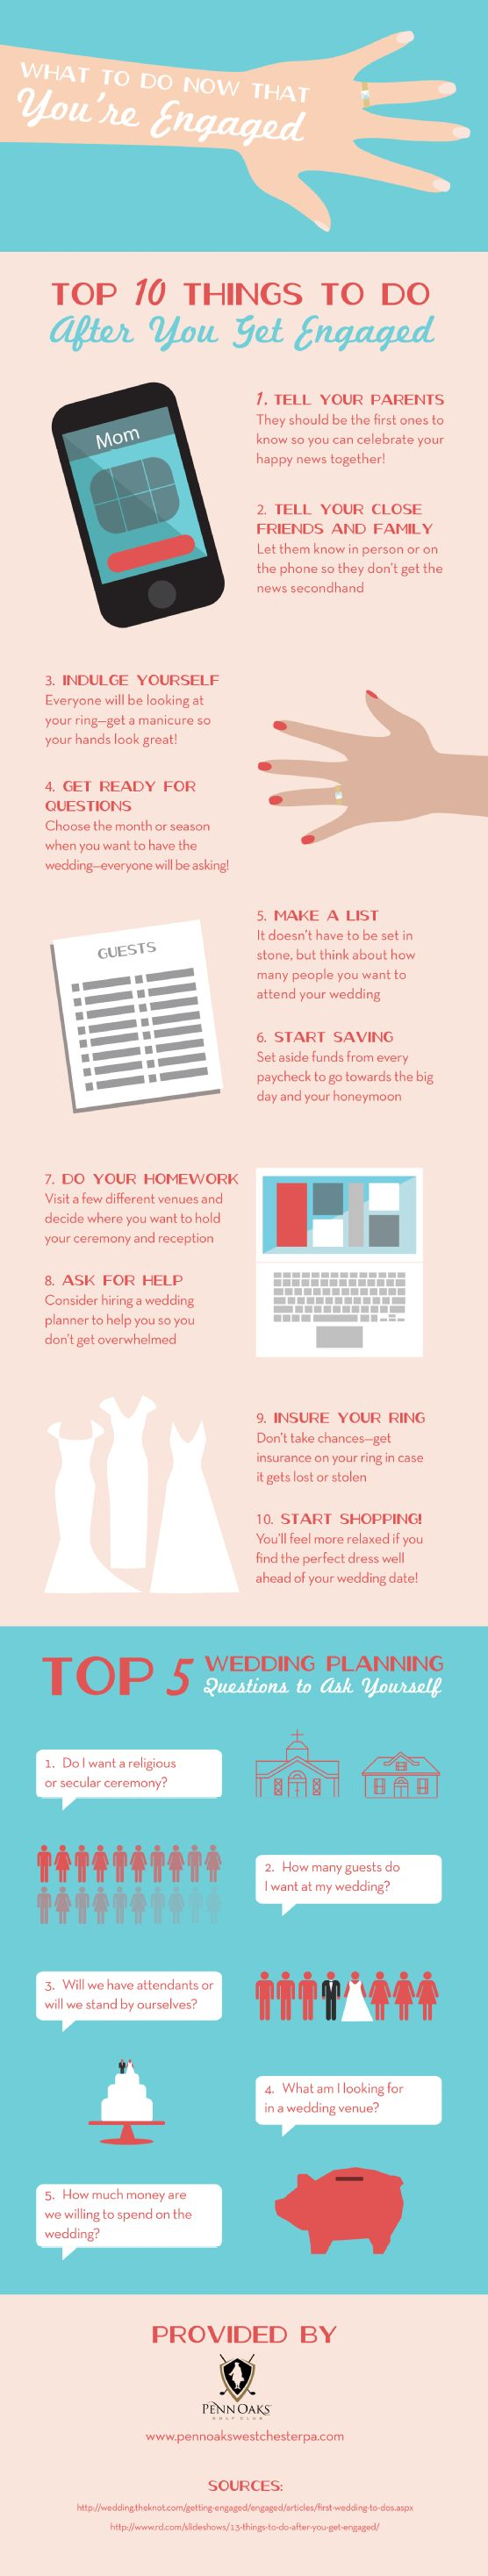 What To Do Now That You're Engaged #Infographic #Relationships